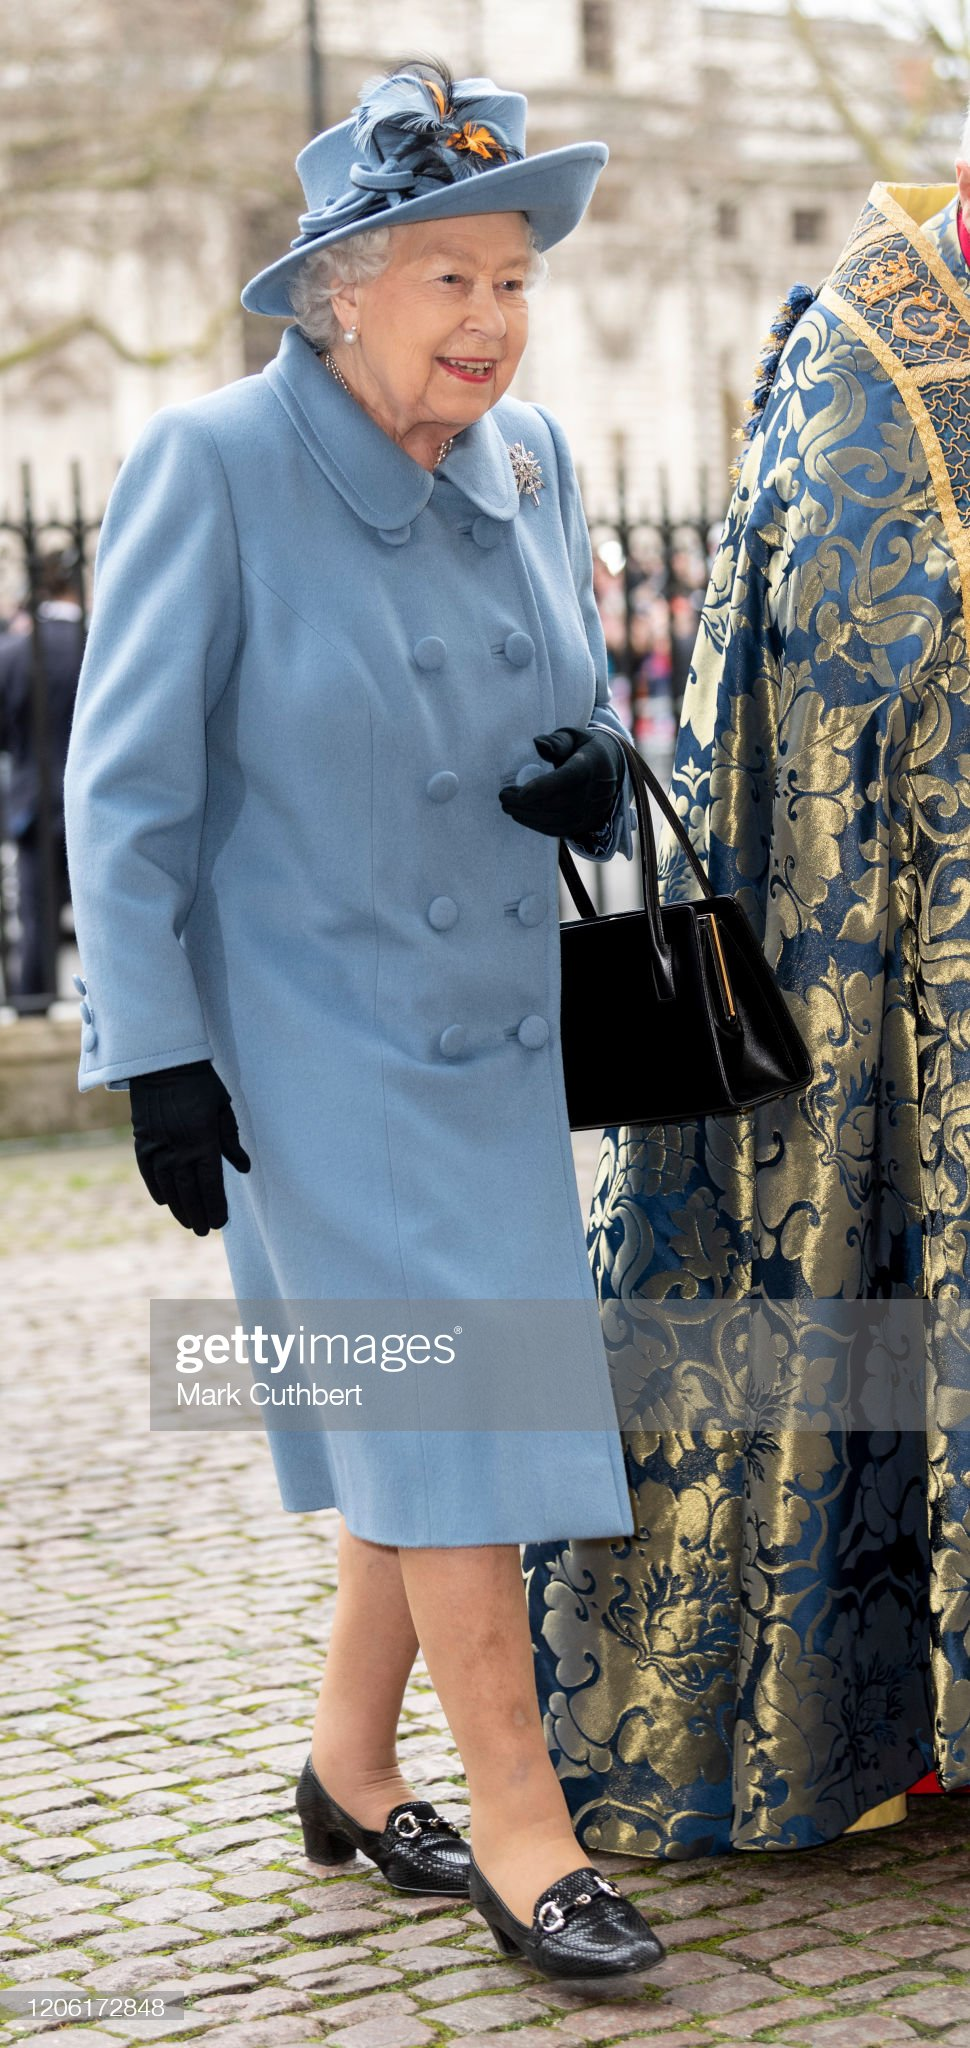 https://media.gettyimages.com/photos/queen-elizabeth-ii-attends-the-commonwealth-day-service-2020-at-on-picture-id1206172848?s=2048x2048